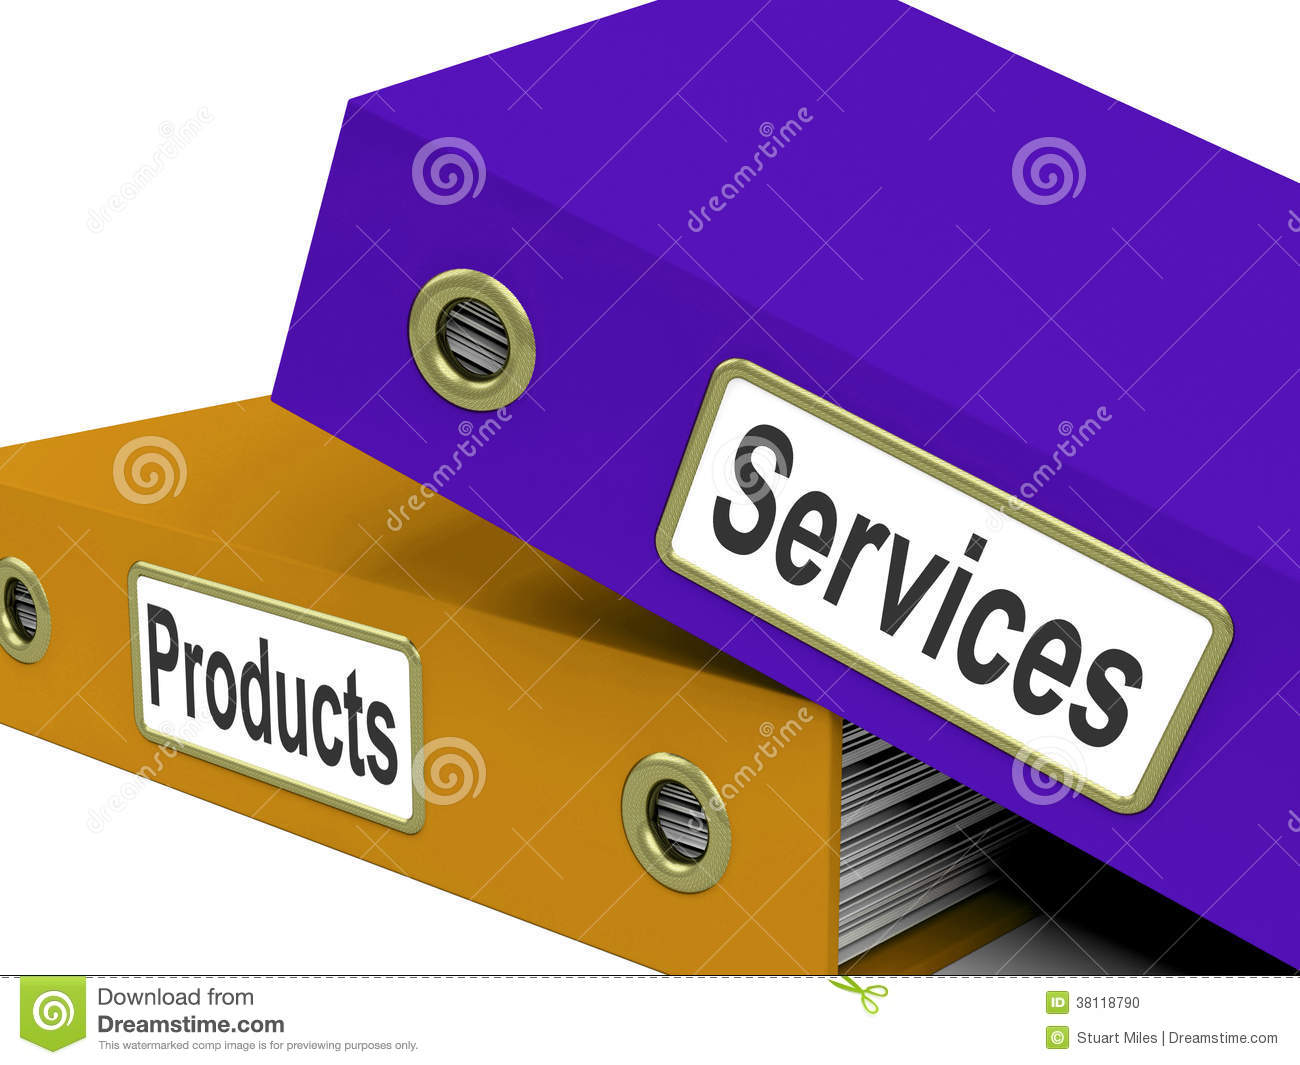 product and services for a business Let's look at seven ways to help your business stand out from the crowd each  one  be honest about your products and services honesty is.